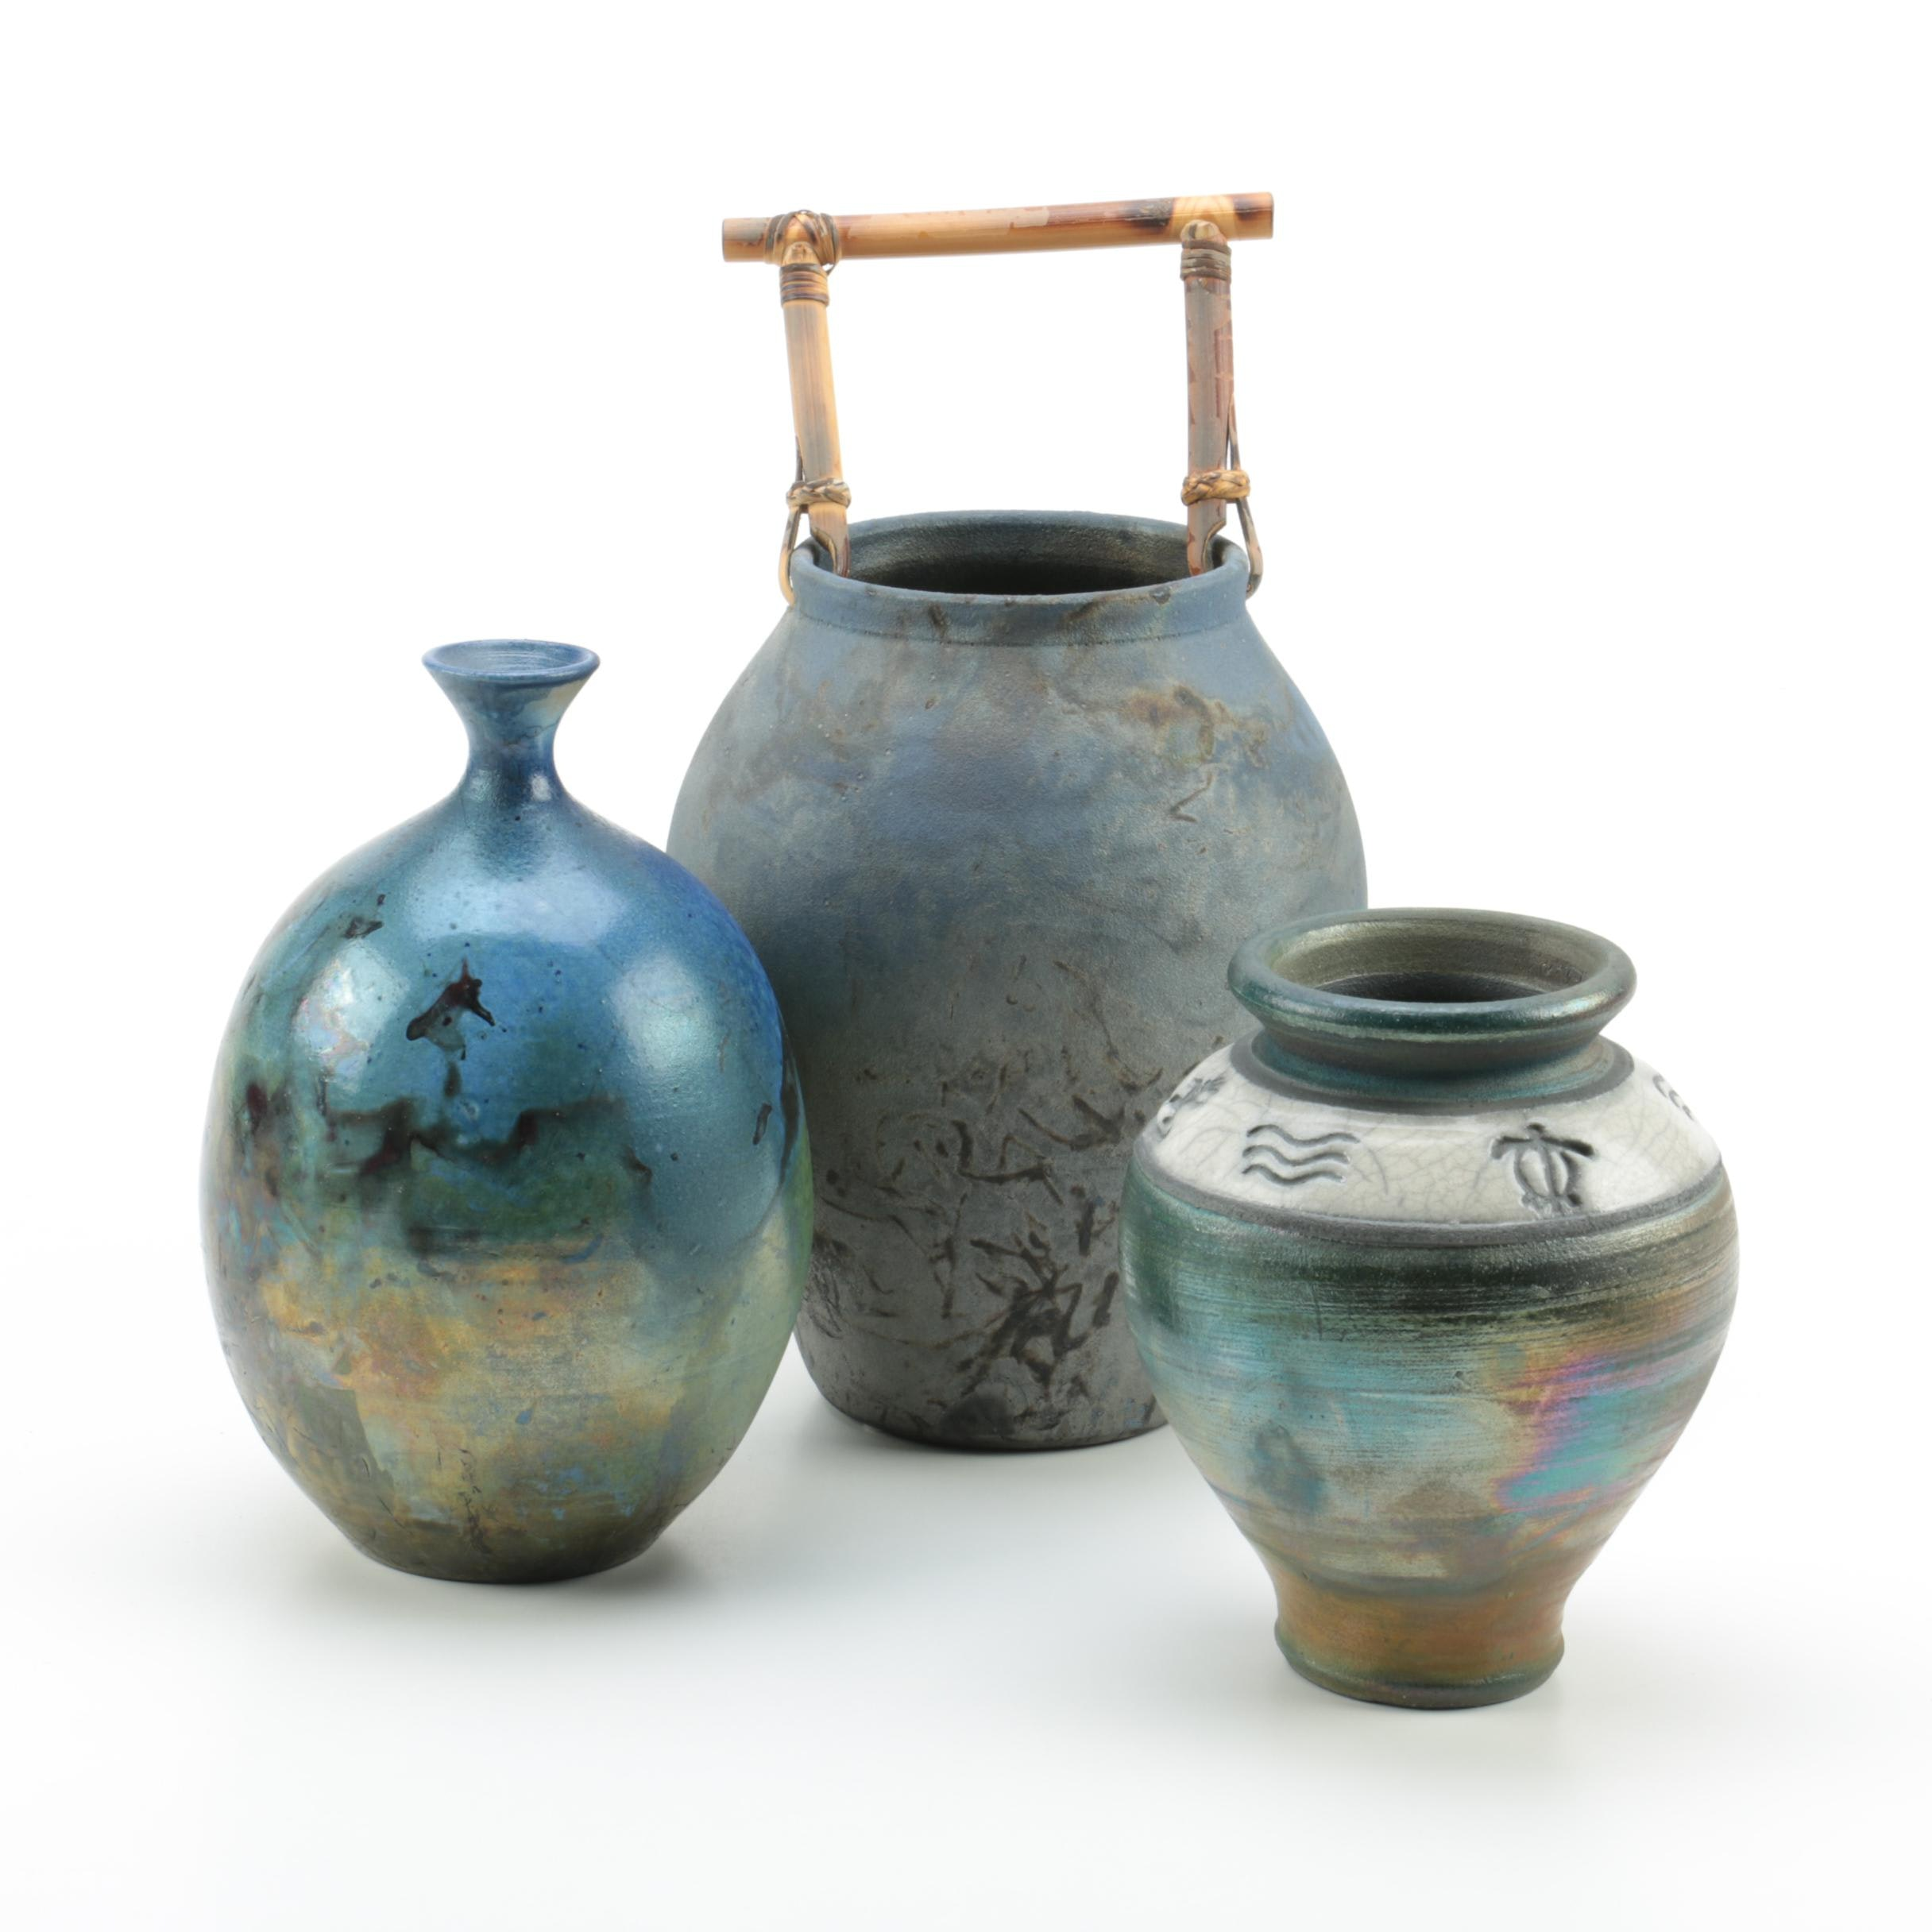 Hand Thrown and Signed Stoneware Raku Vases